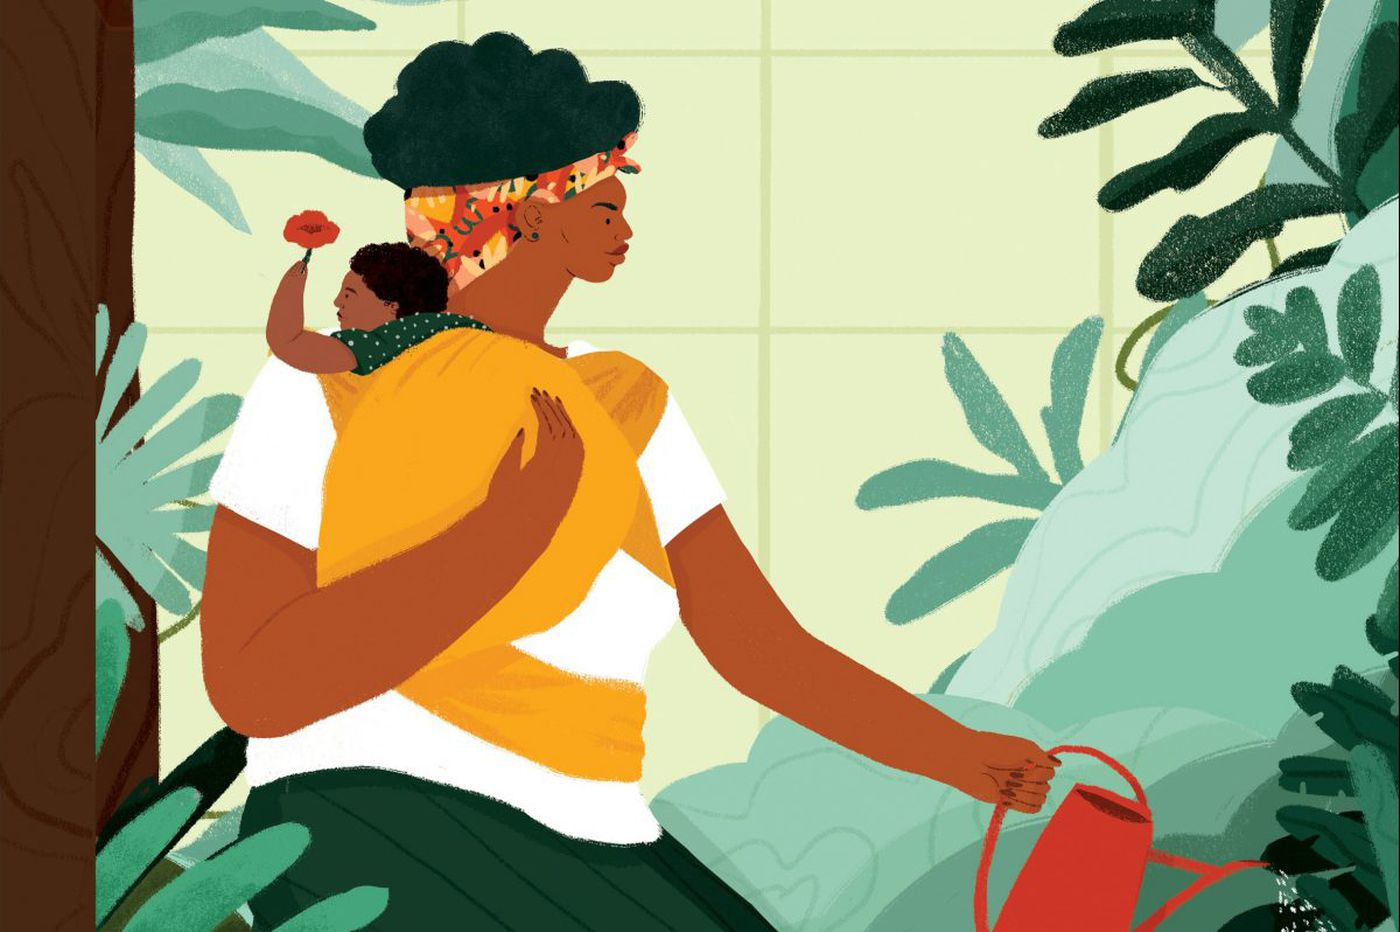 She graduated from UArts only three weeks ago. Now she's illustrating the cover of the New Yorker